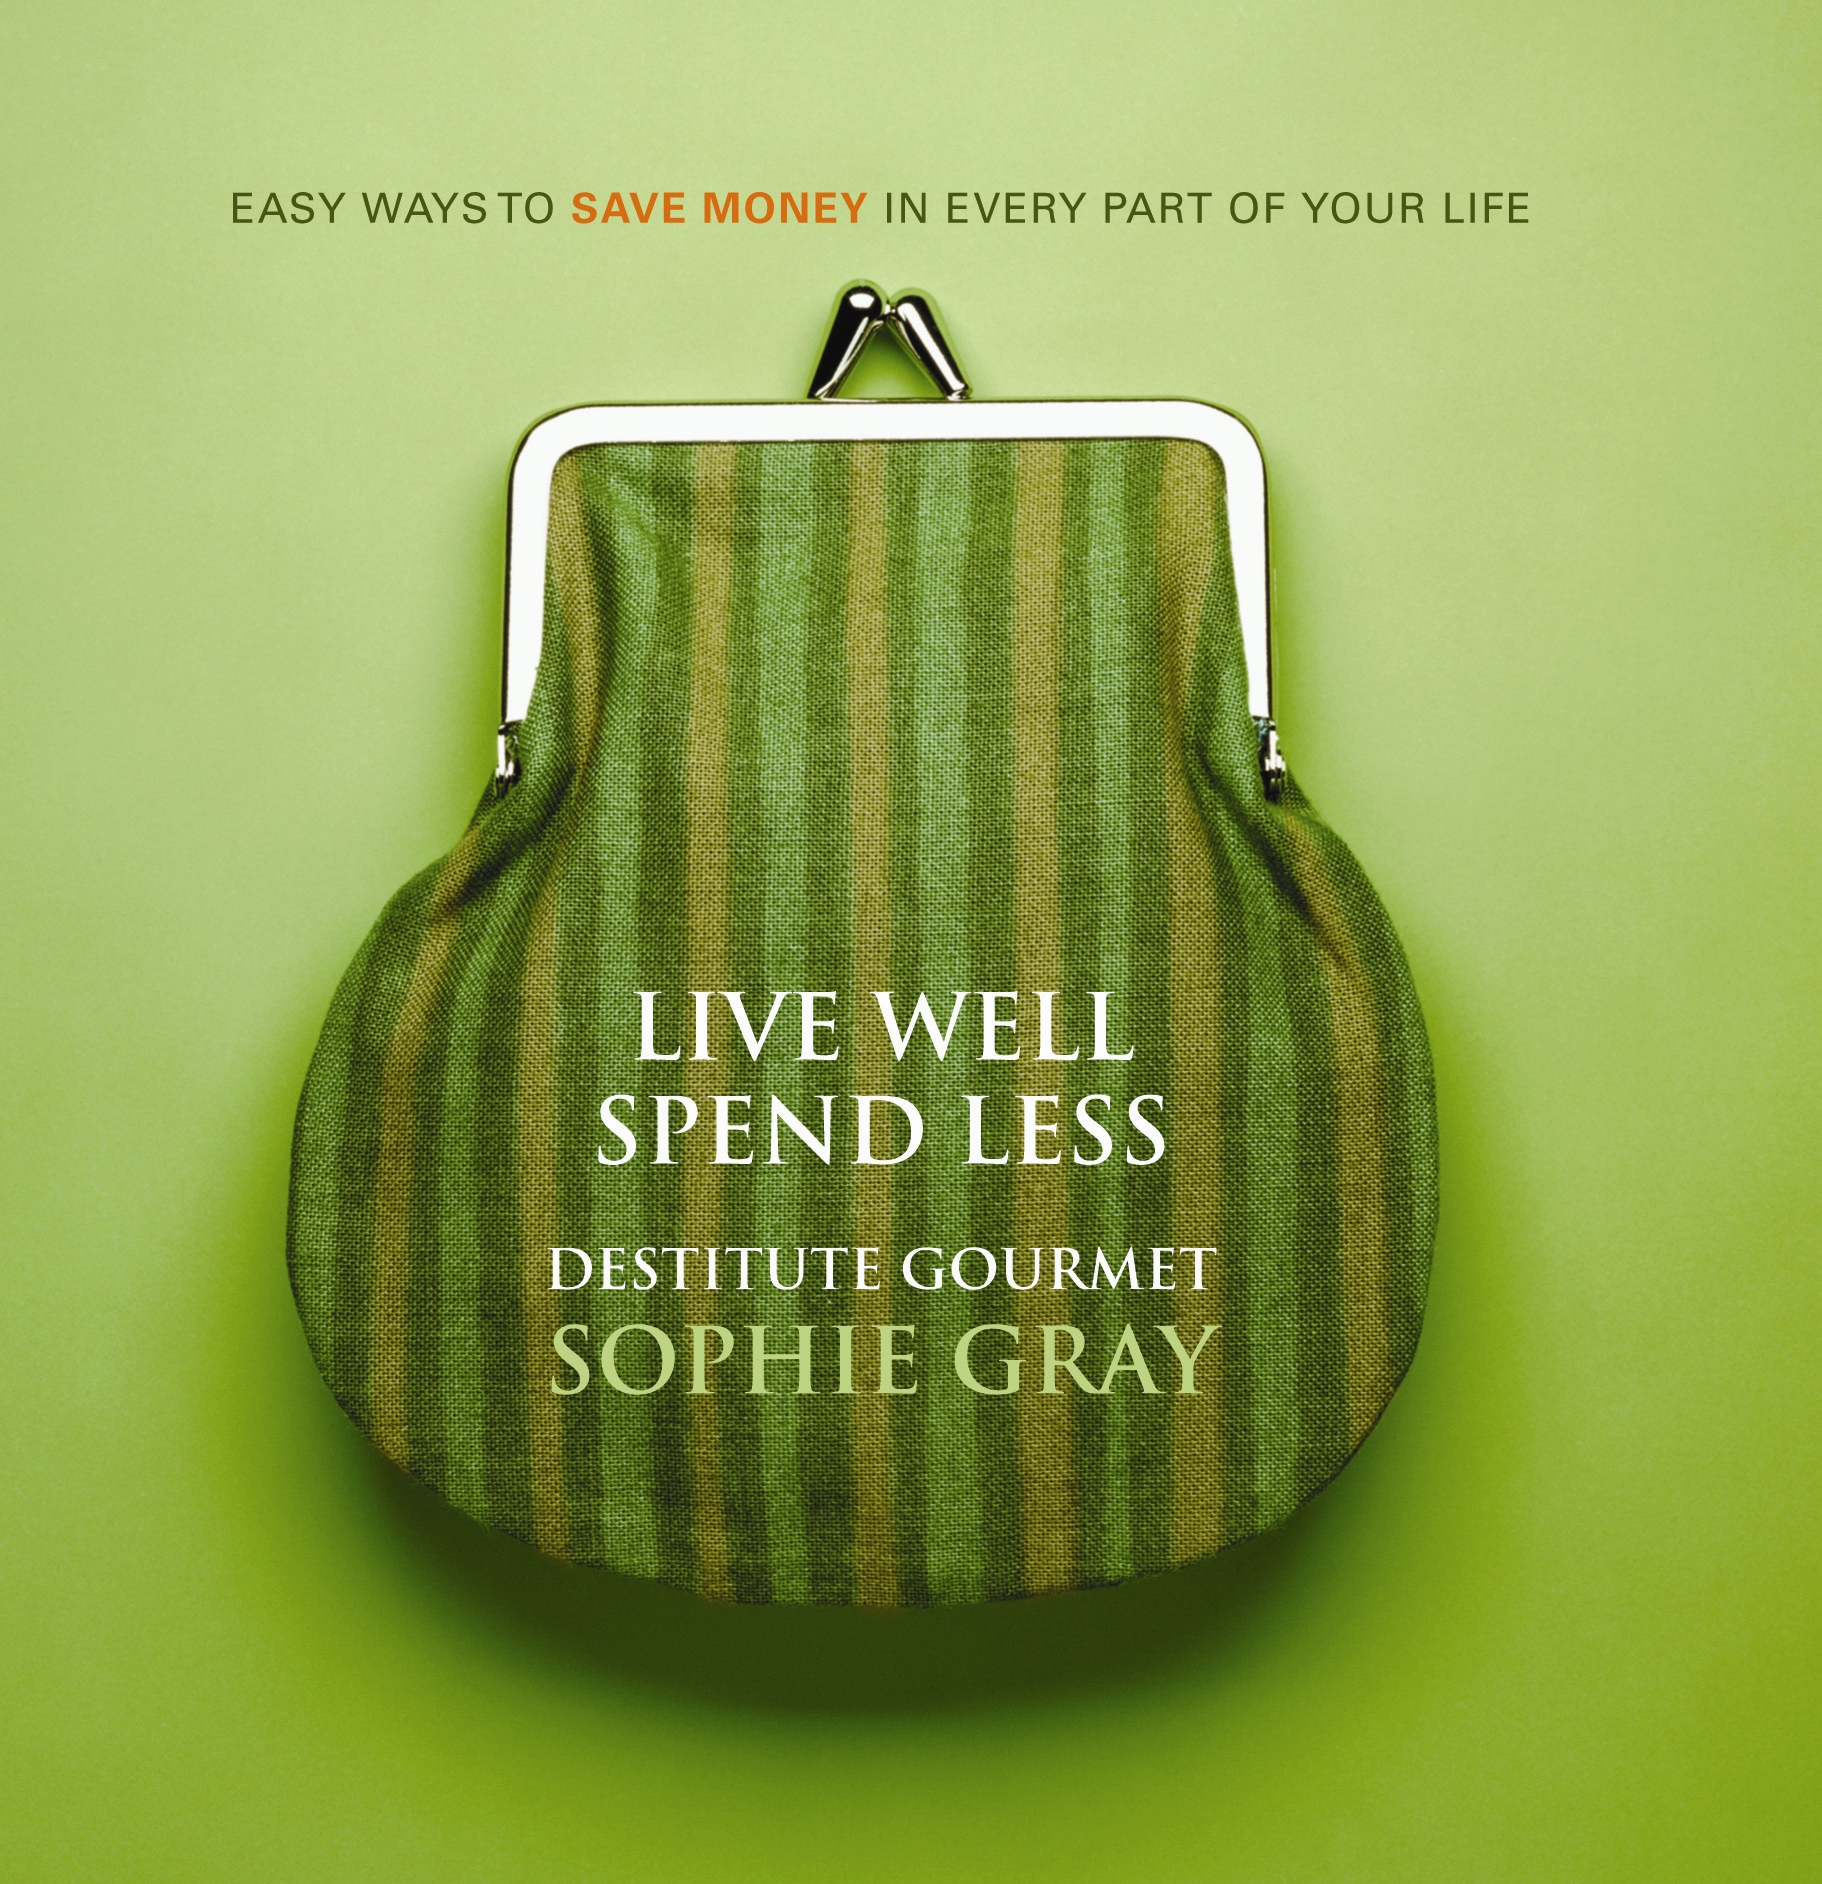 Live well spend less by sophie gray penguin books australia for Fastest way to save for a house